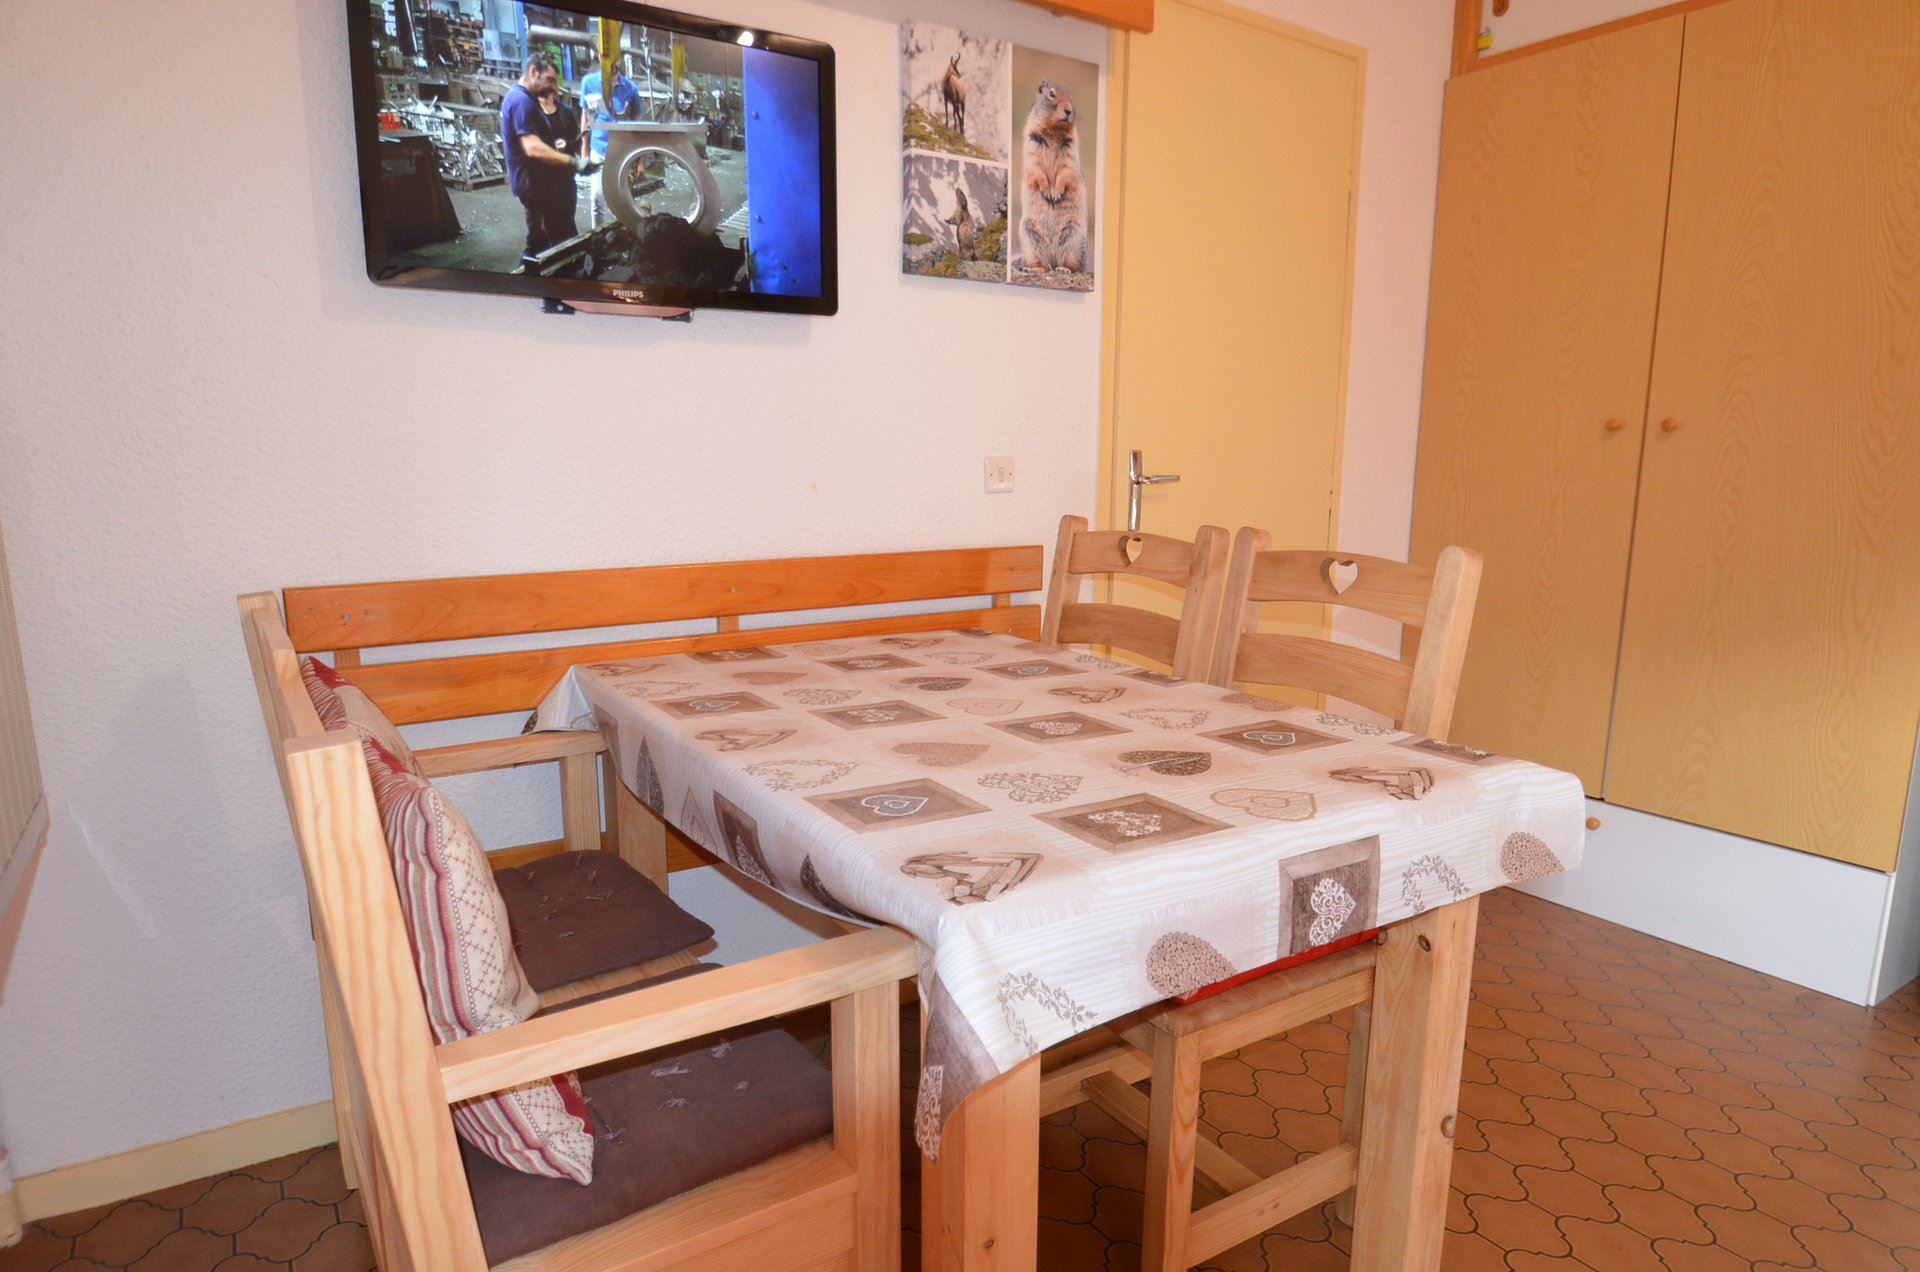 2 Rooms 4 Pers ski-in ski-out / JETAY 113